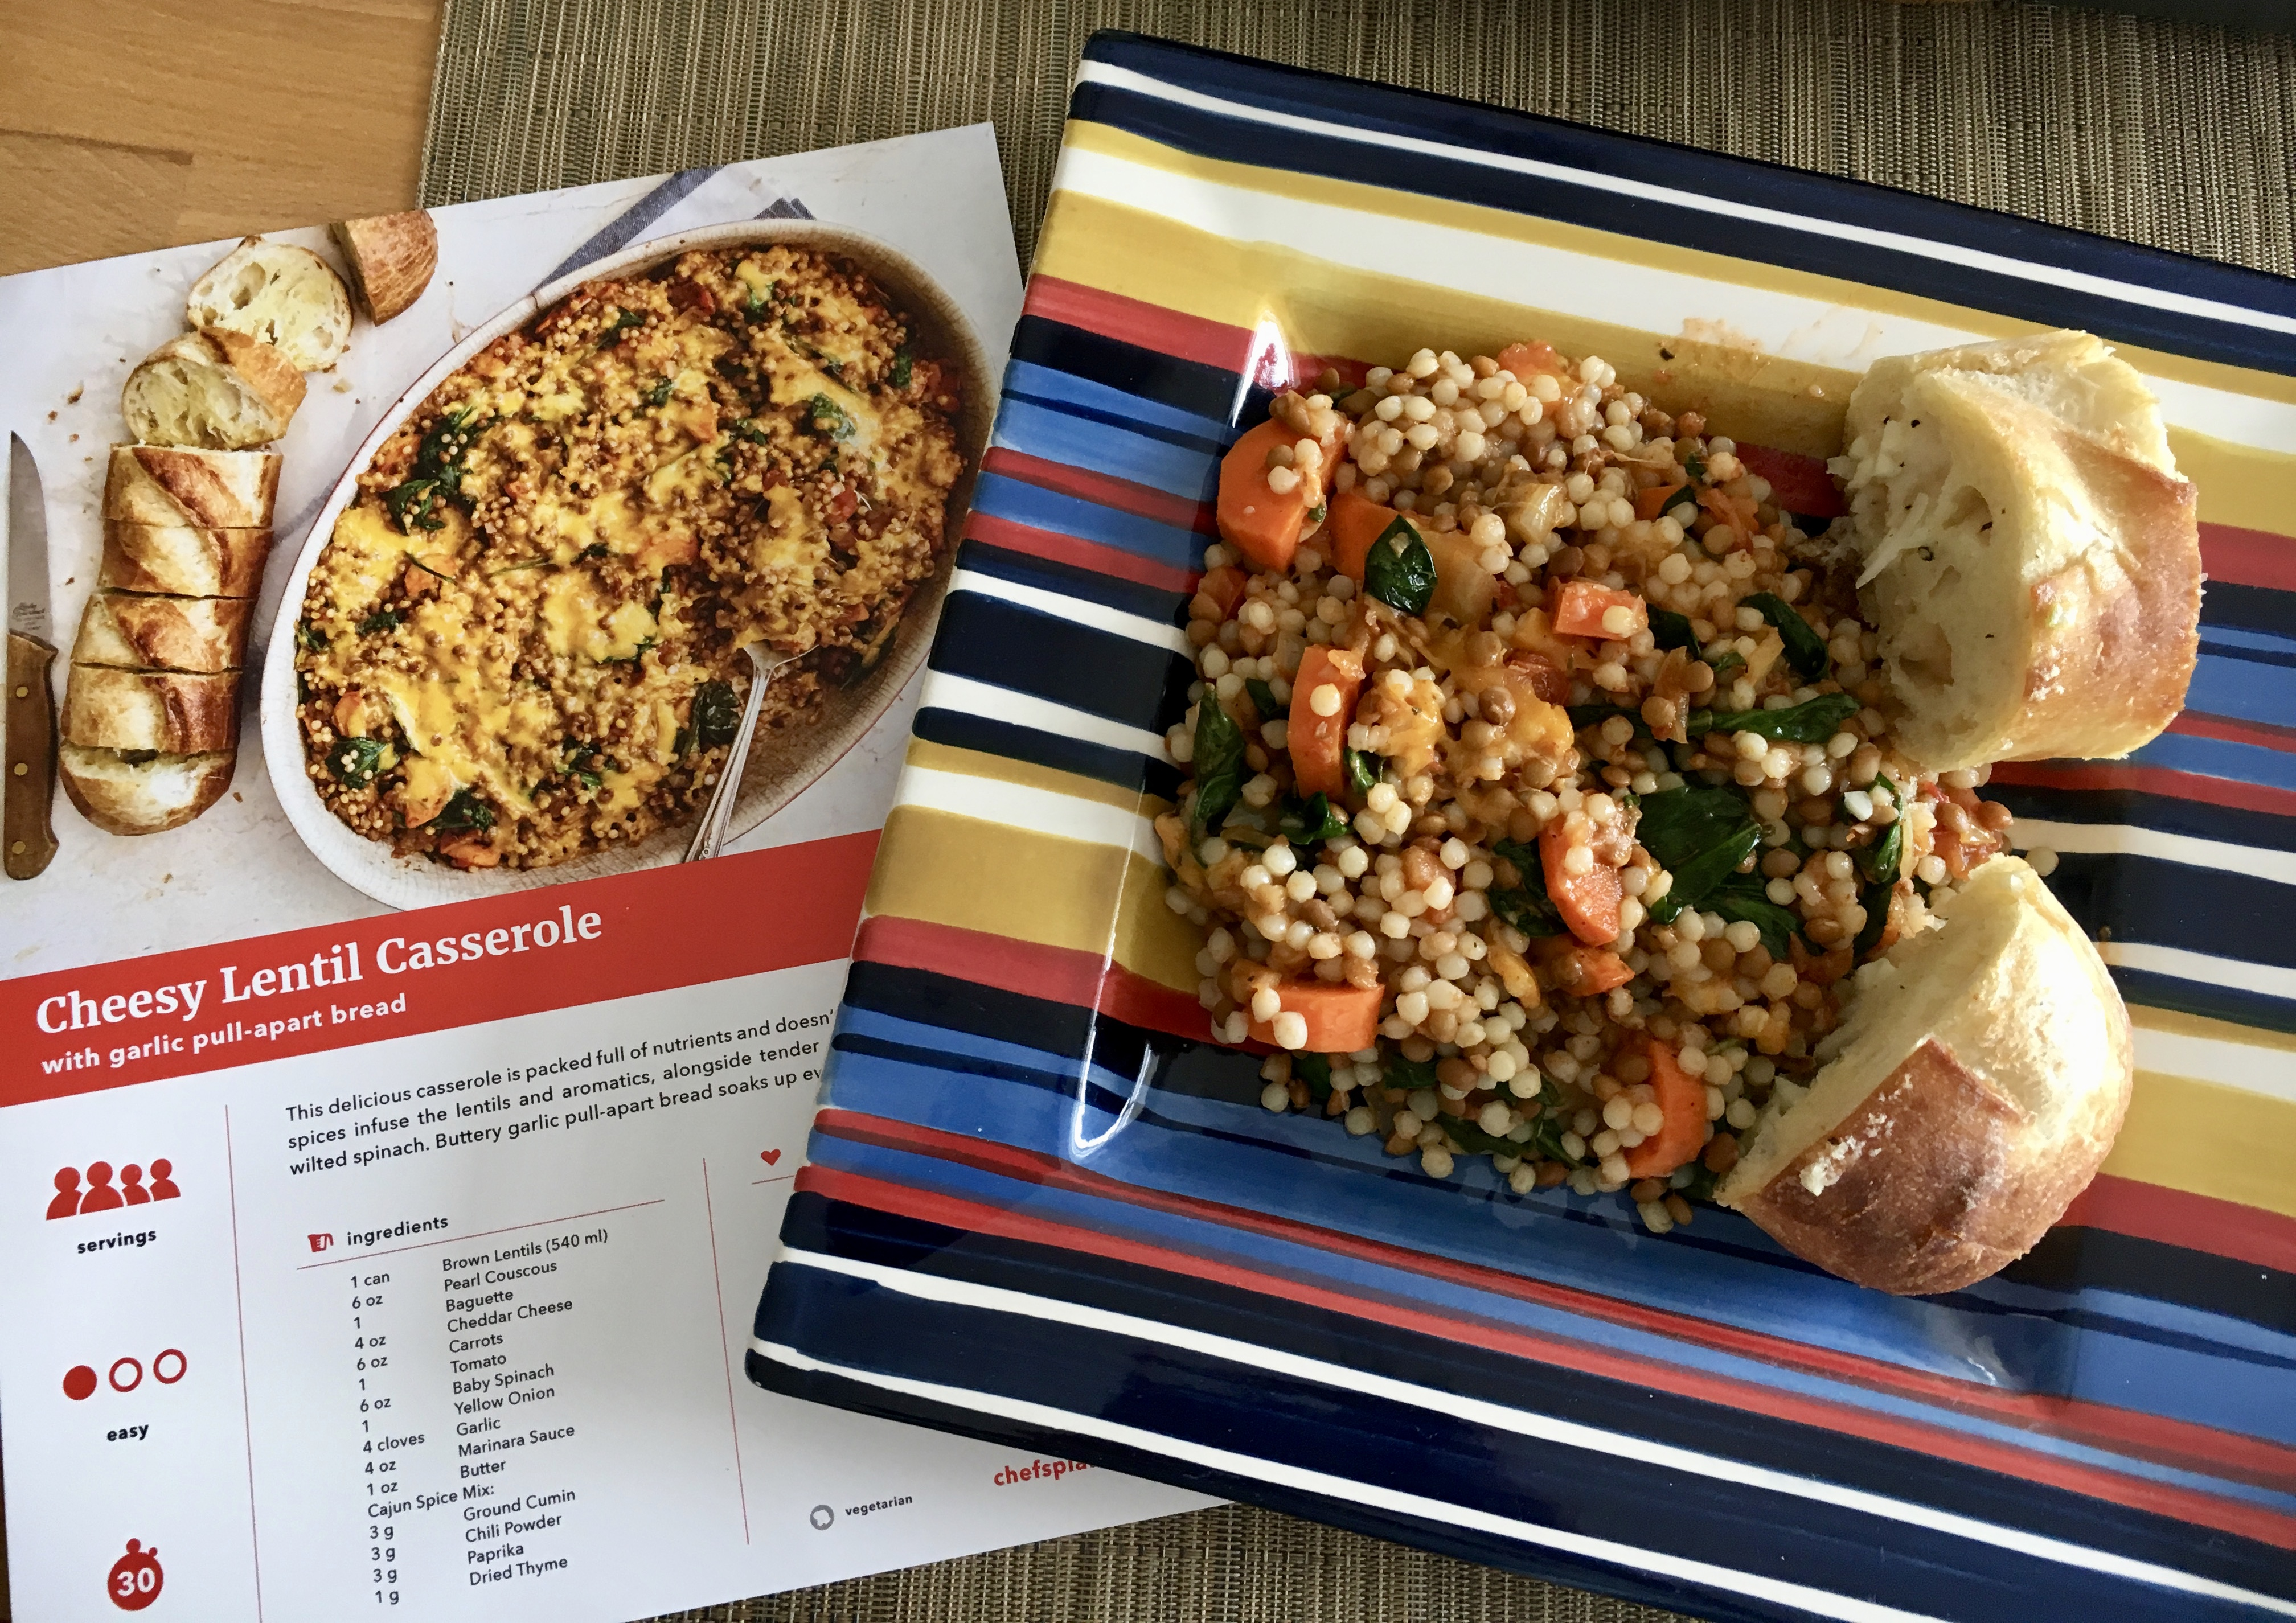 Delicious cheesy lentil casserole recipe from Chefs Plate